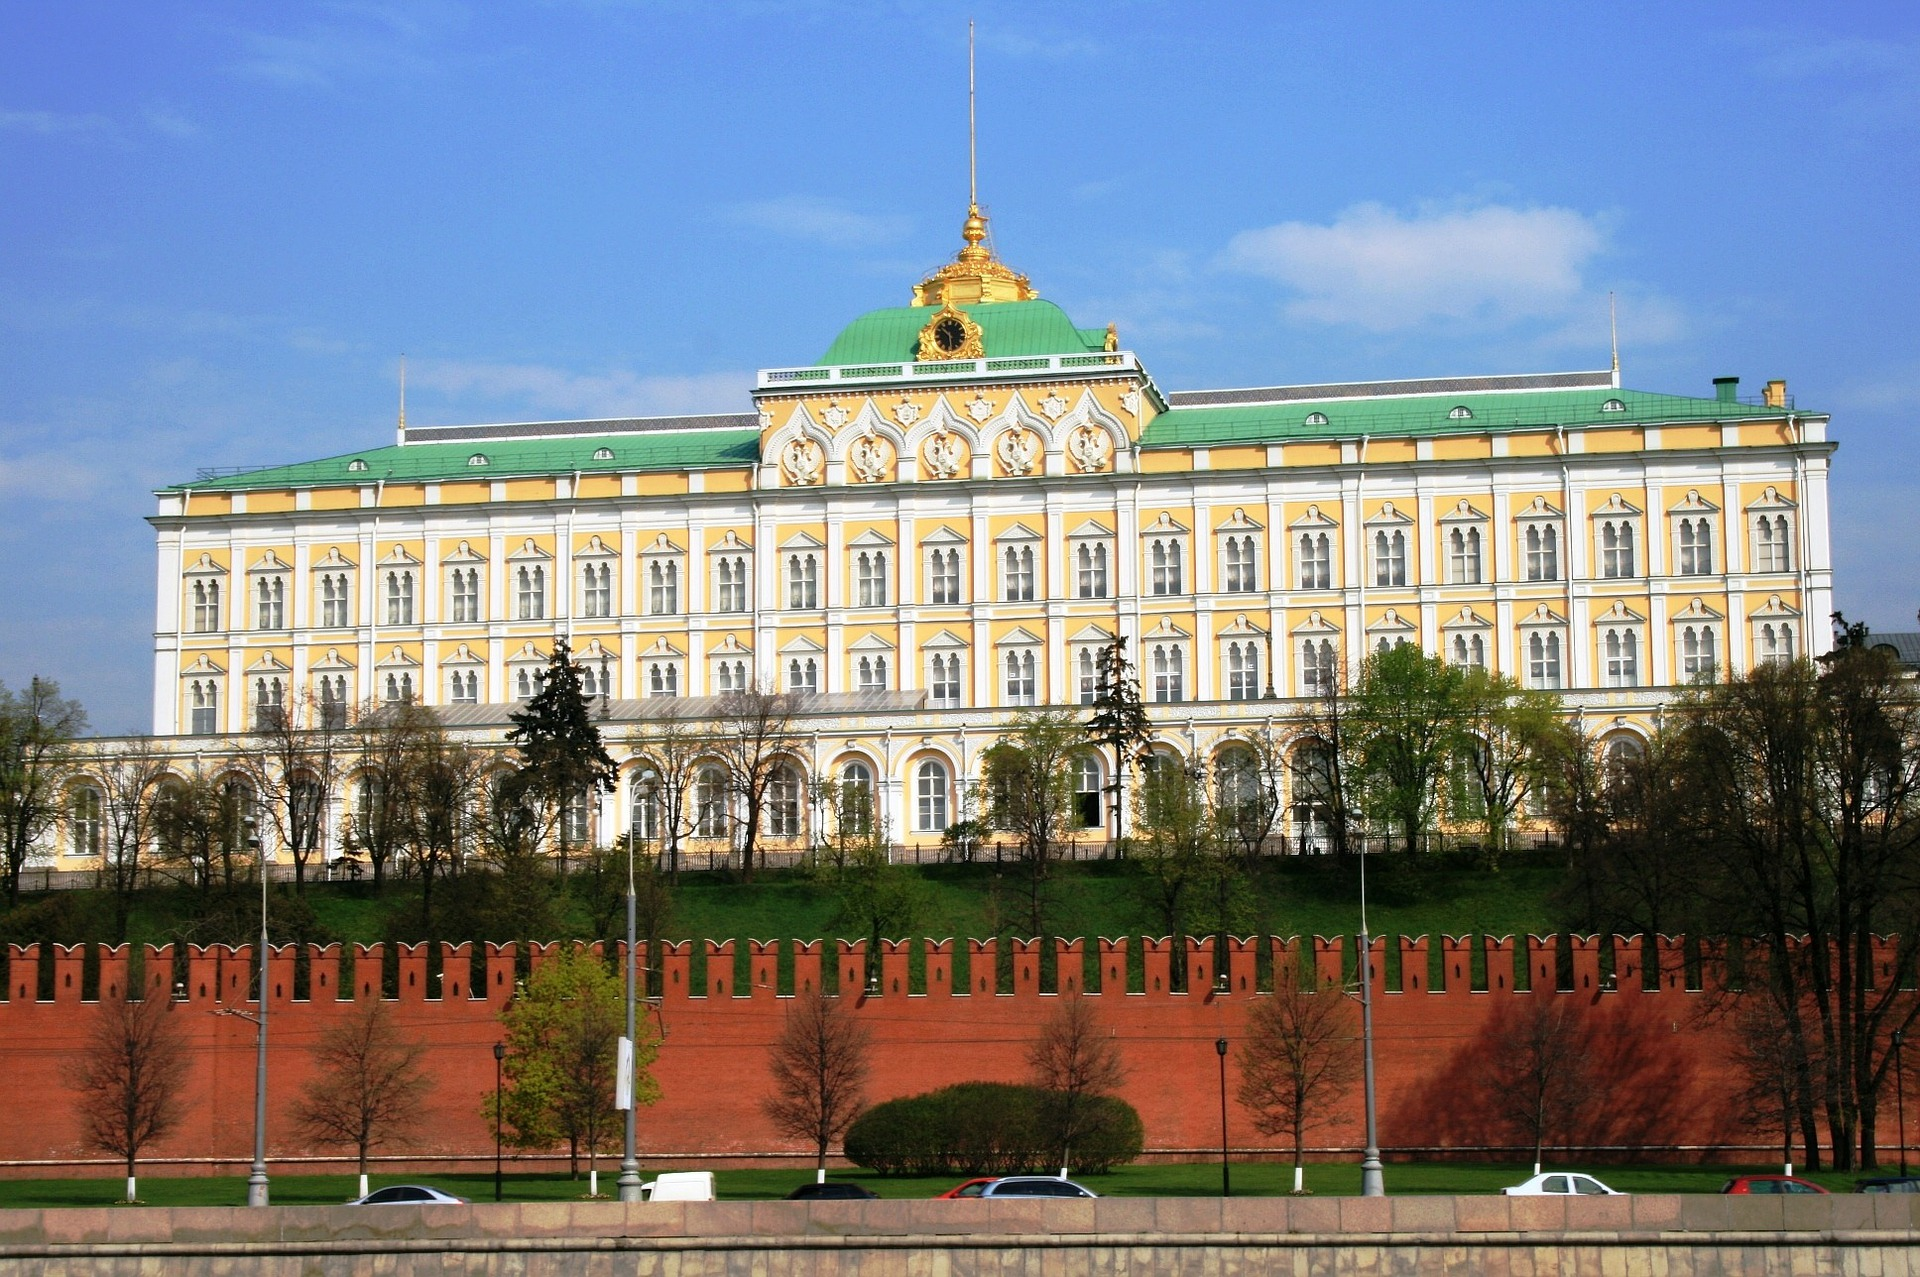 The Grand Kremlin Palace, also translated Great Kremlin Palace, Moscow, Russia